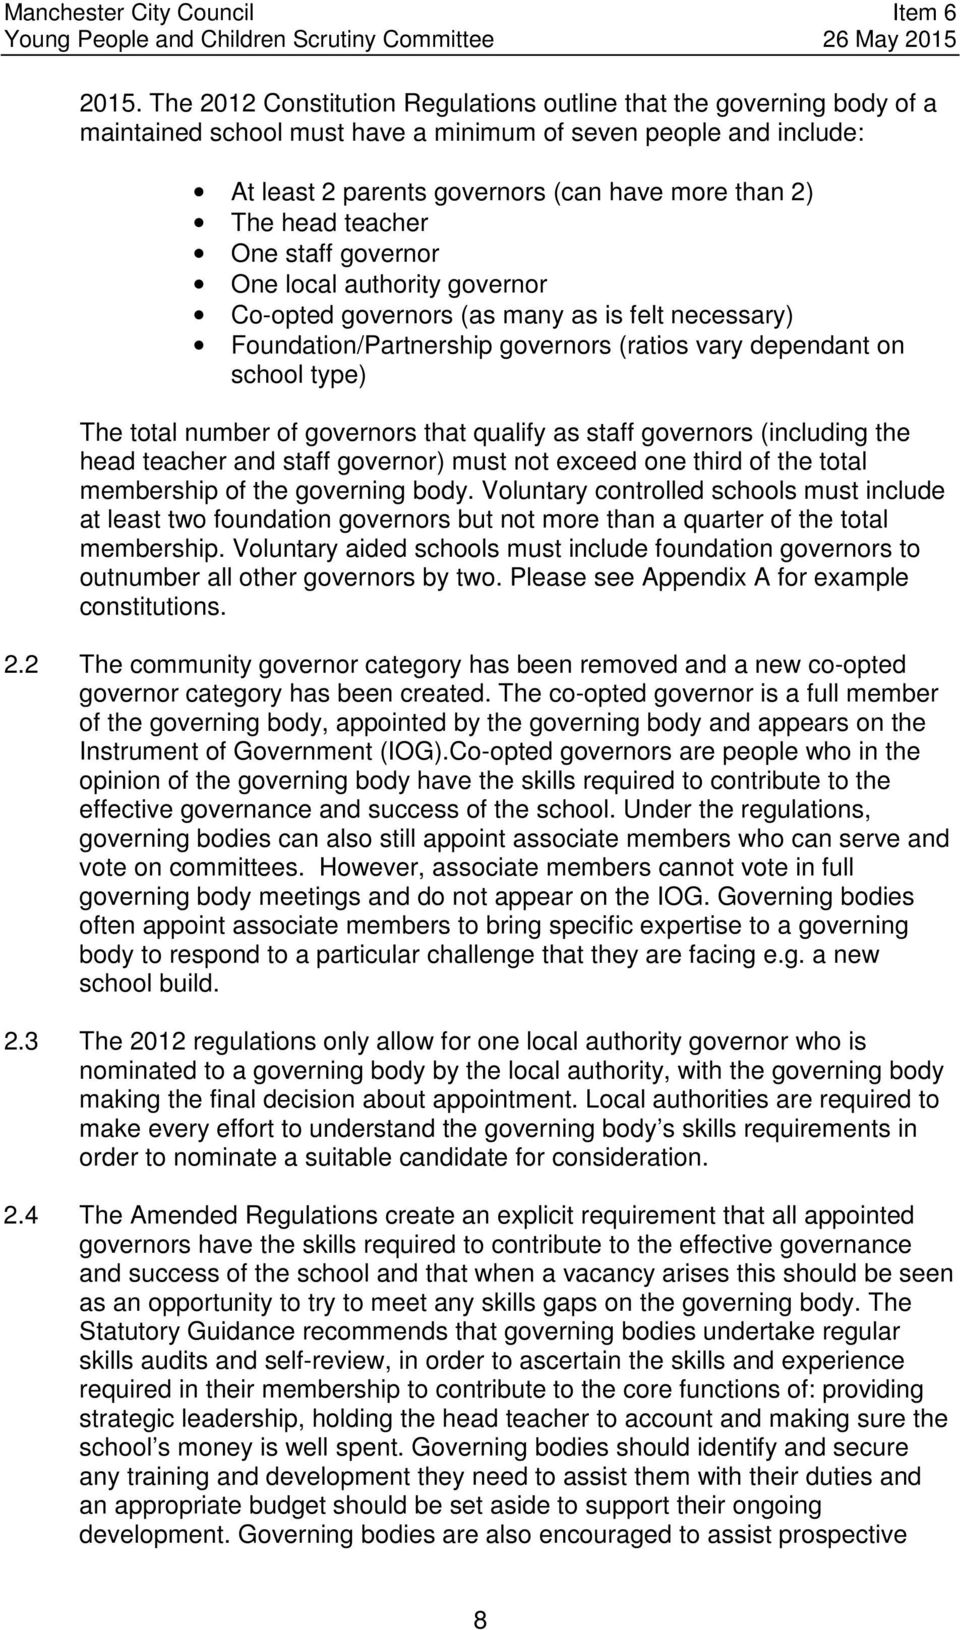 of governors that qualify as staff governors (including the head teacher and staff governor) must not exceed one third of the total membership of the governing body.